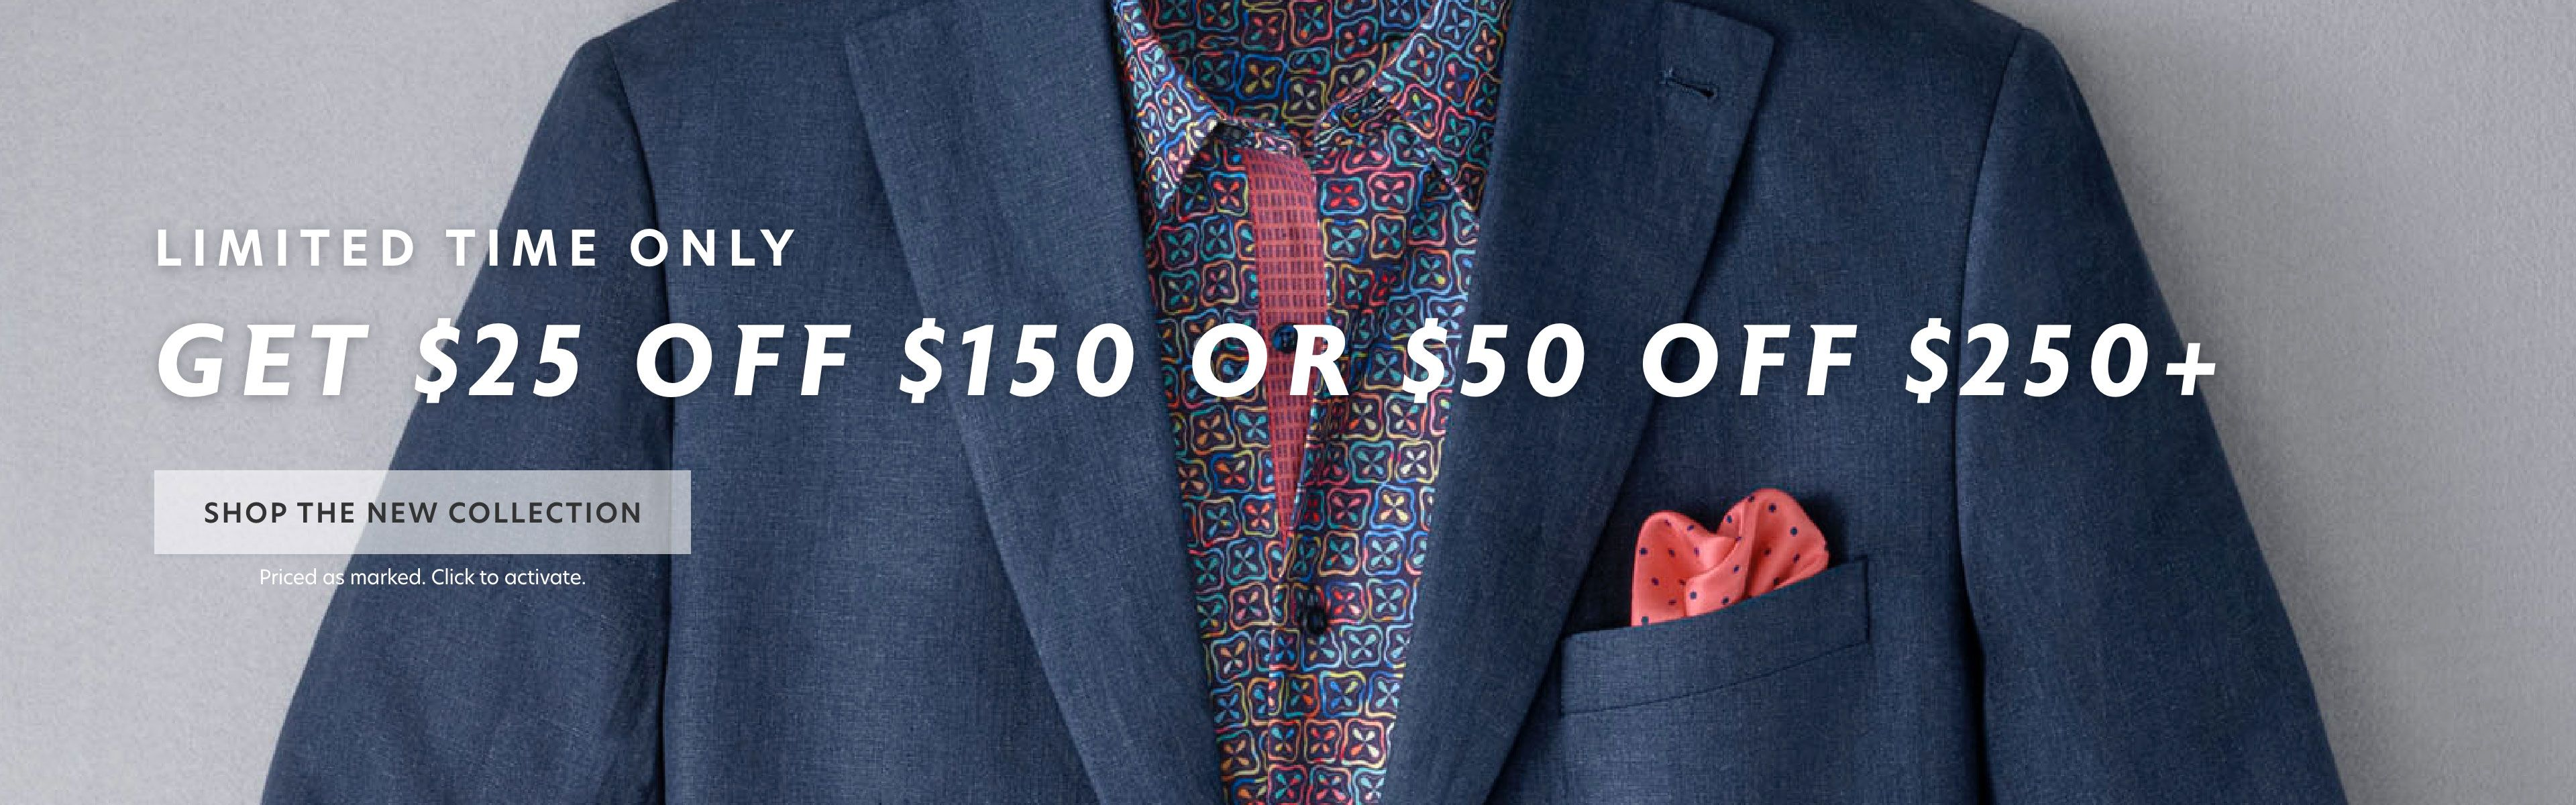 $25 Off $150 or $50 Off $250